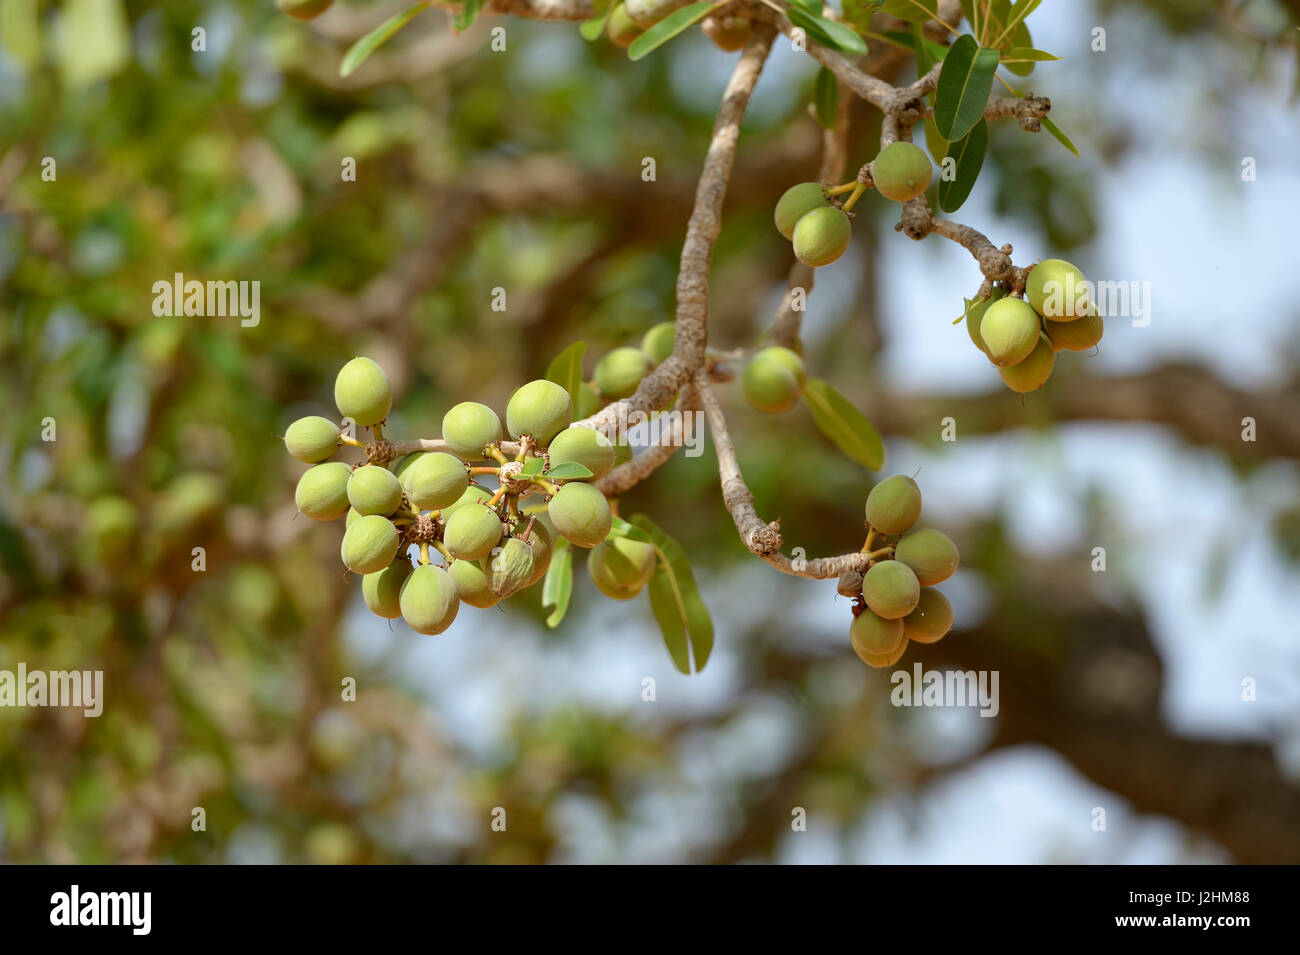 Shea tree (Vitellaria paradoxa) with fruits, Burkina Faso - Stock Image